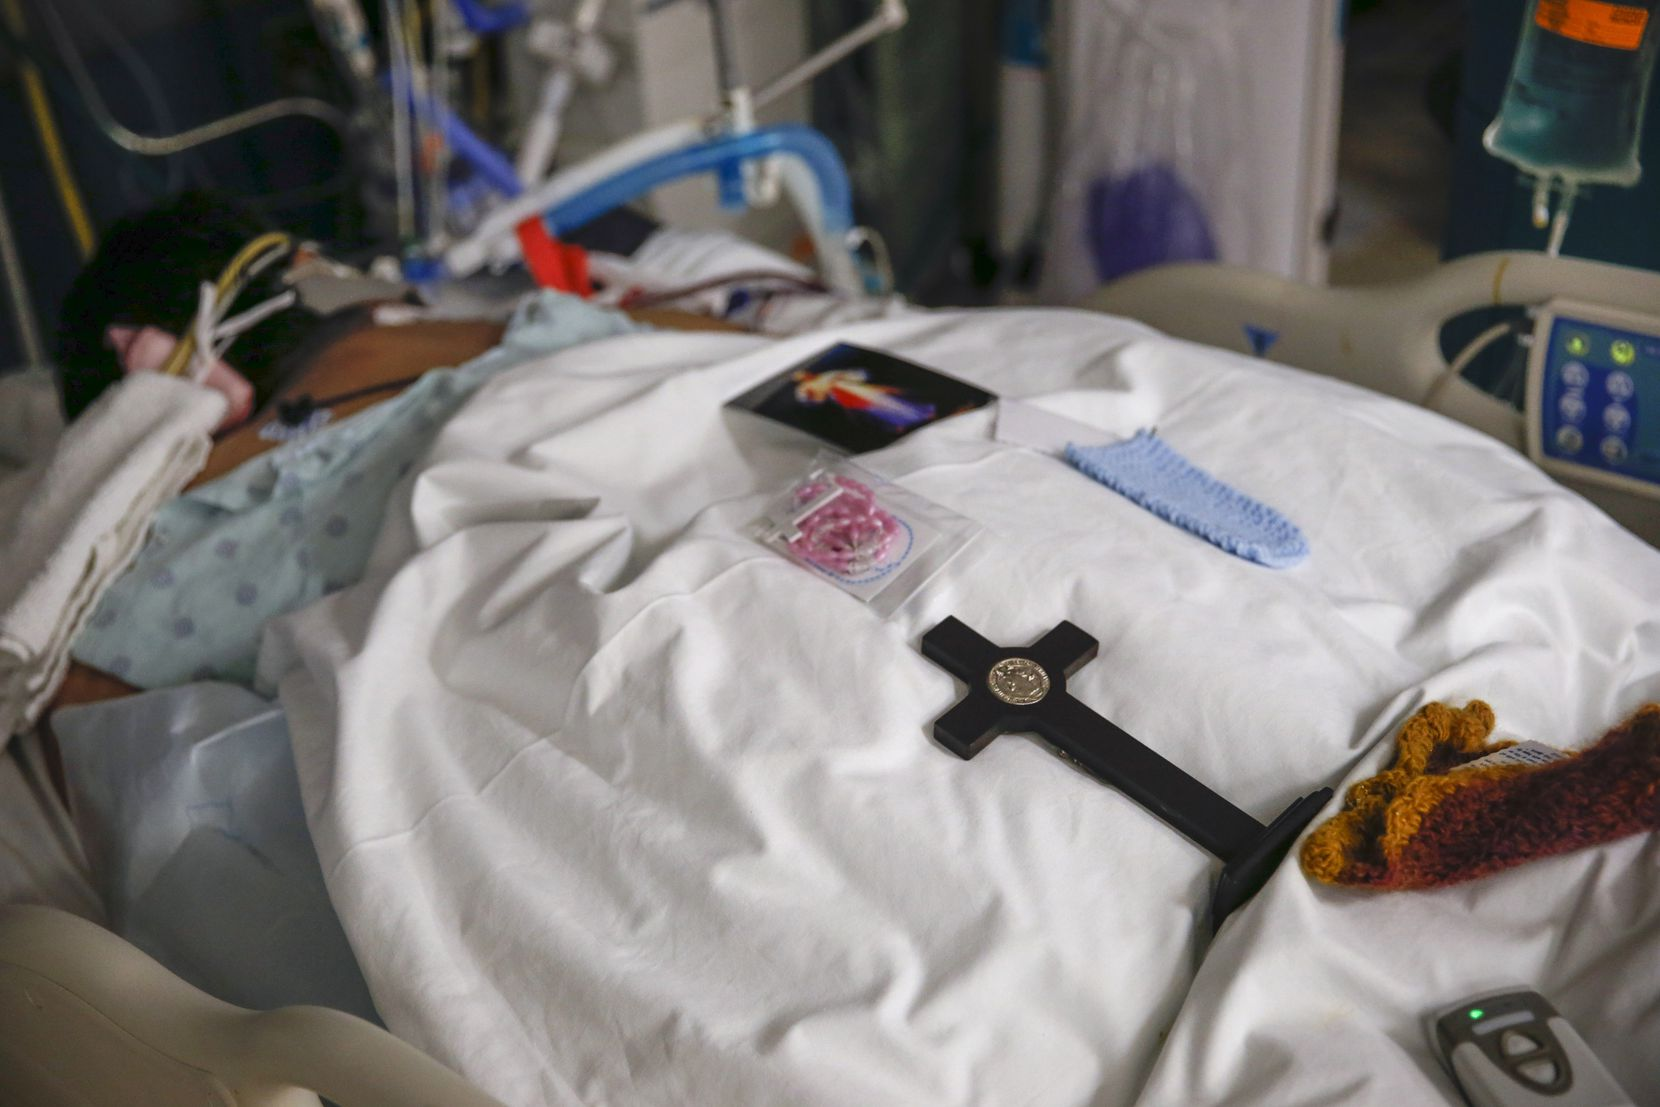 A cross, rosary and prayer card provided by a patient's family rest on the person's blanketed back.